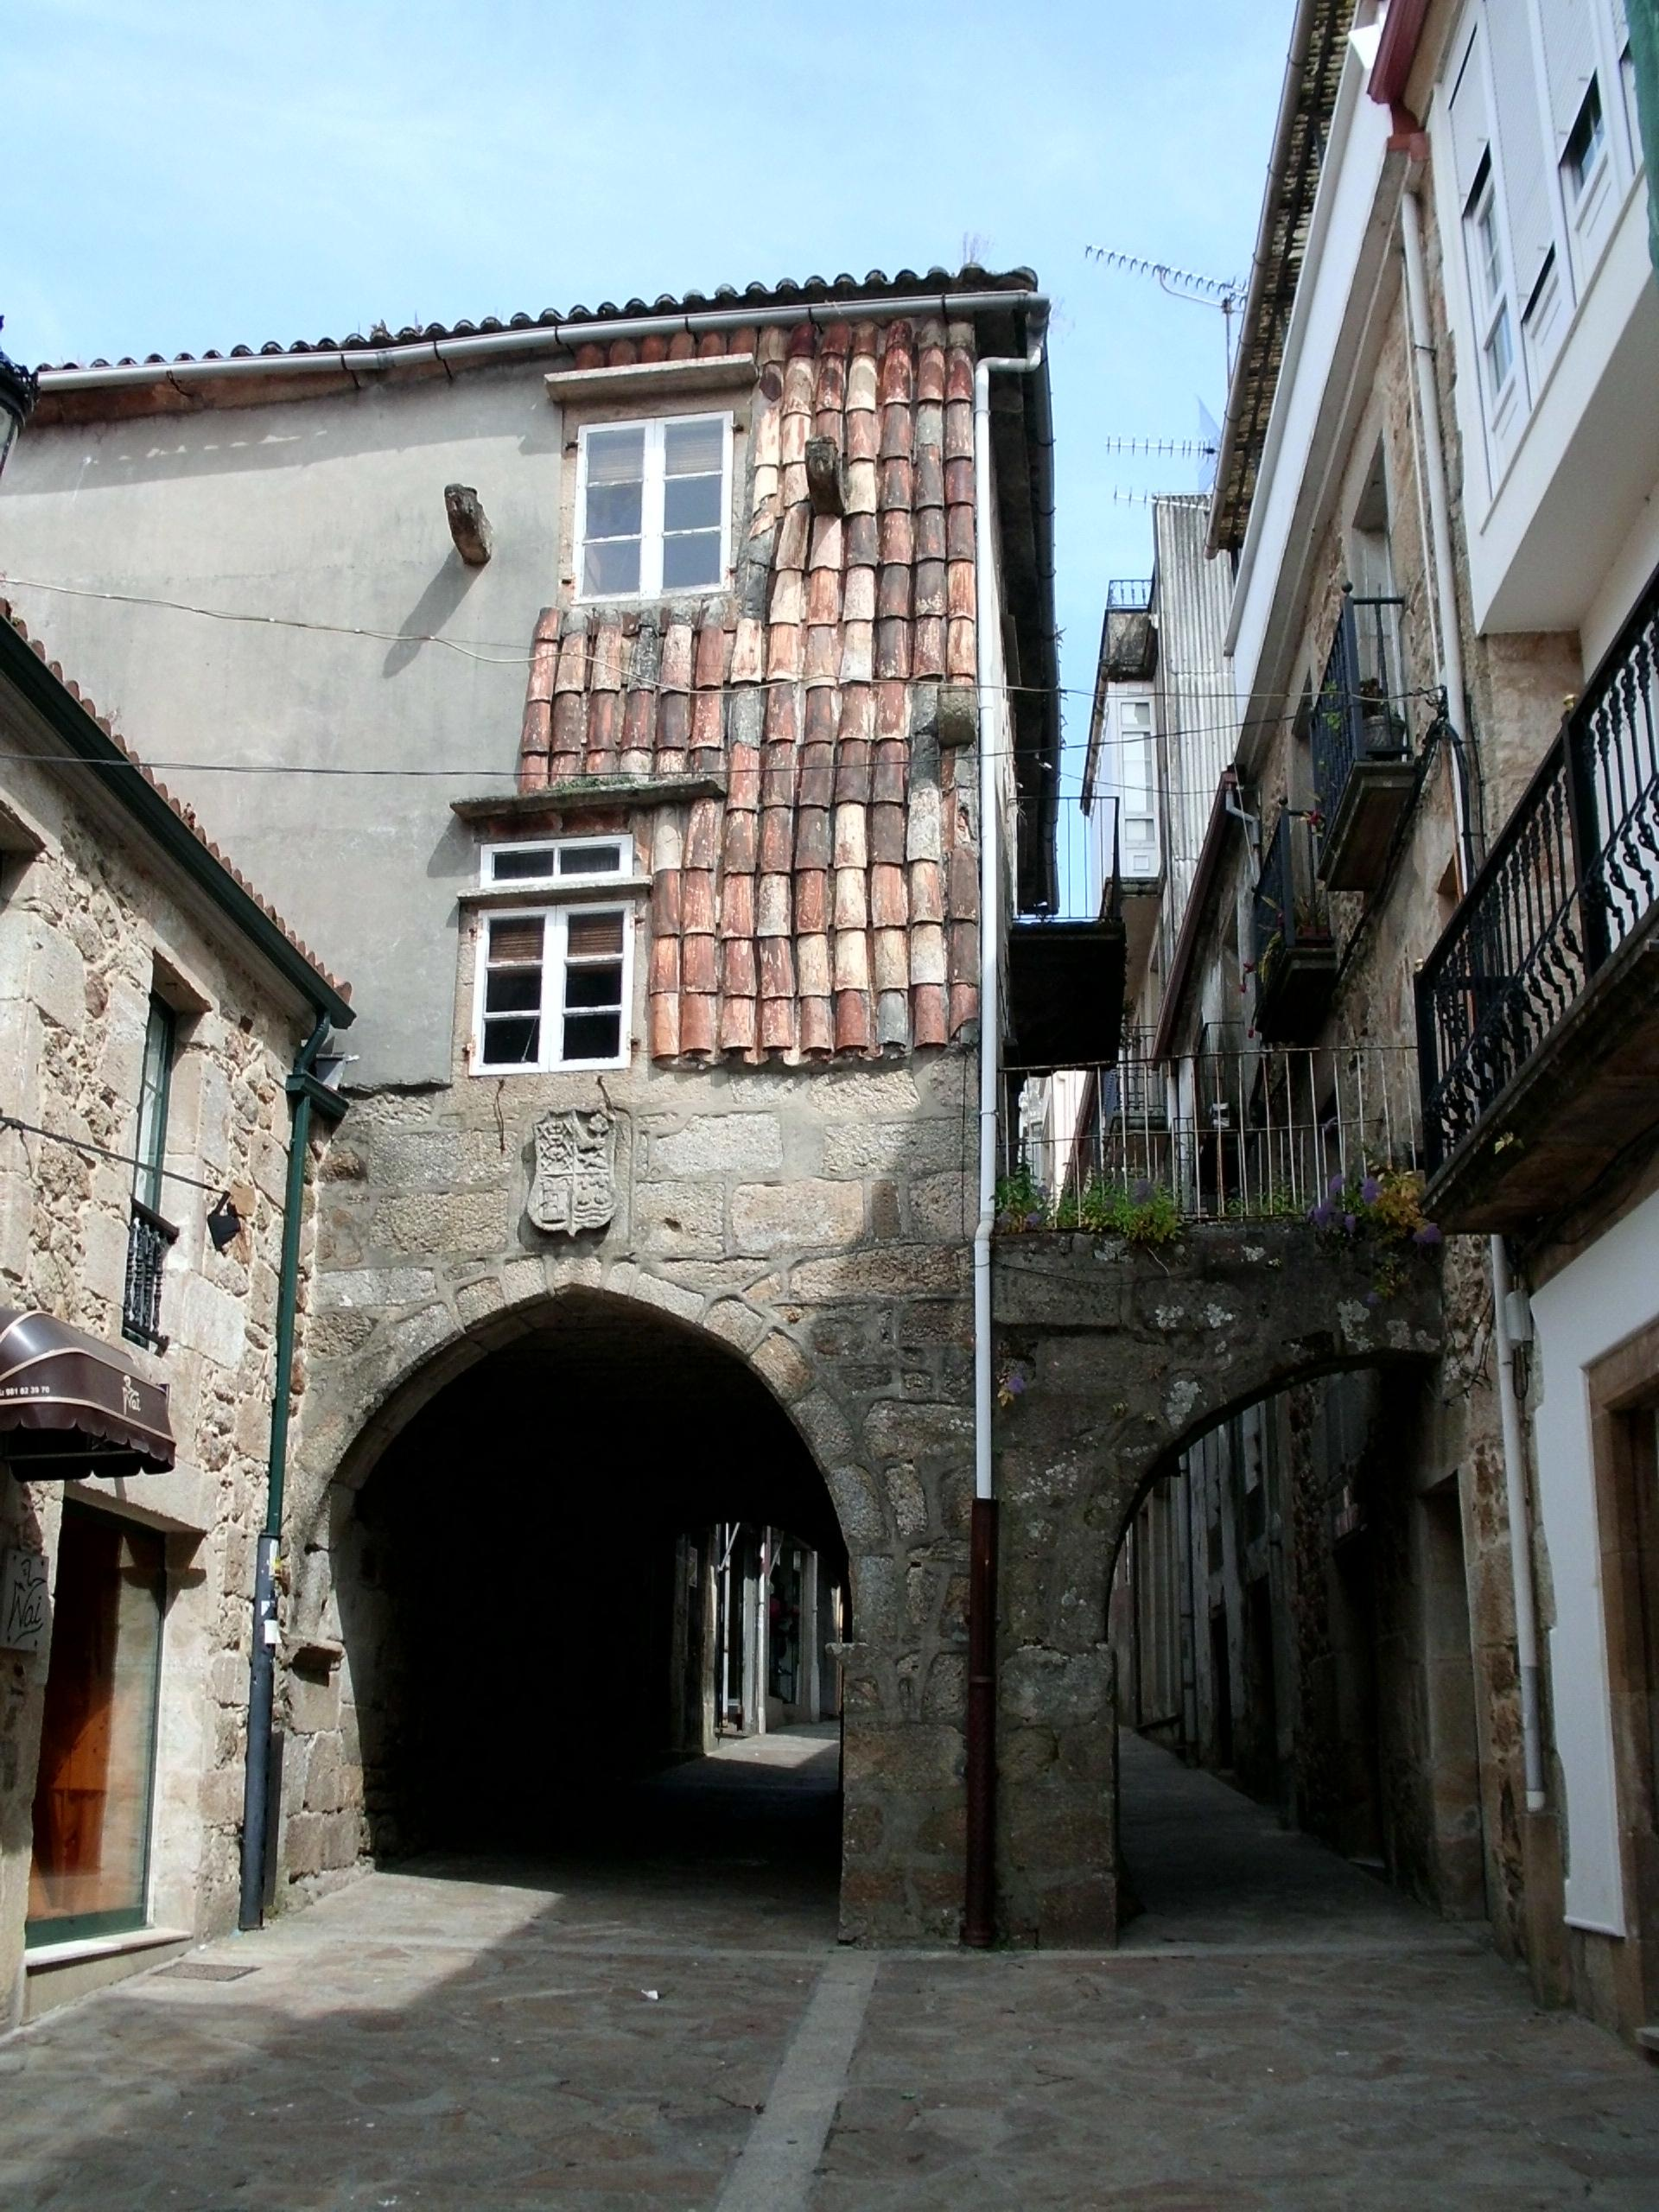 http://upload.wikimedia.org/wikipedia/commons/c/cd/Vista_xeral_do_Pazo_do_Forno_do_Rato.jpg